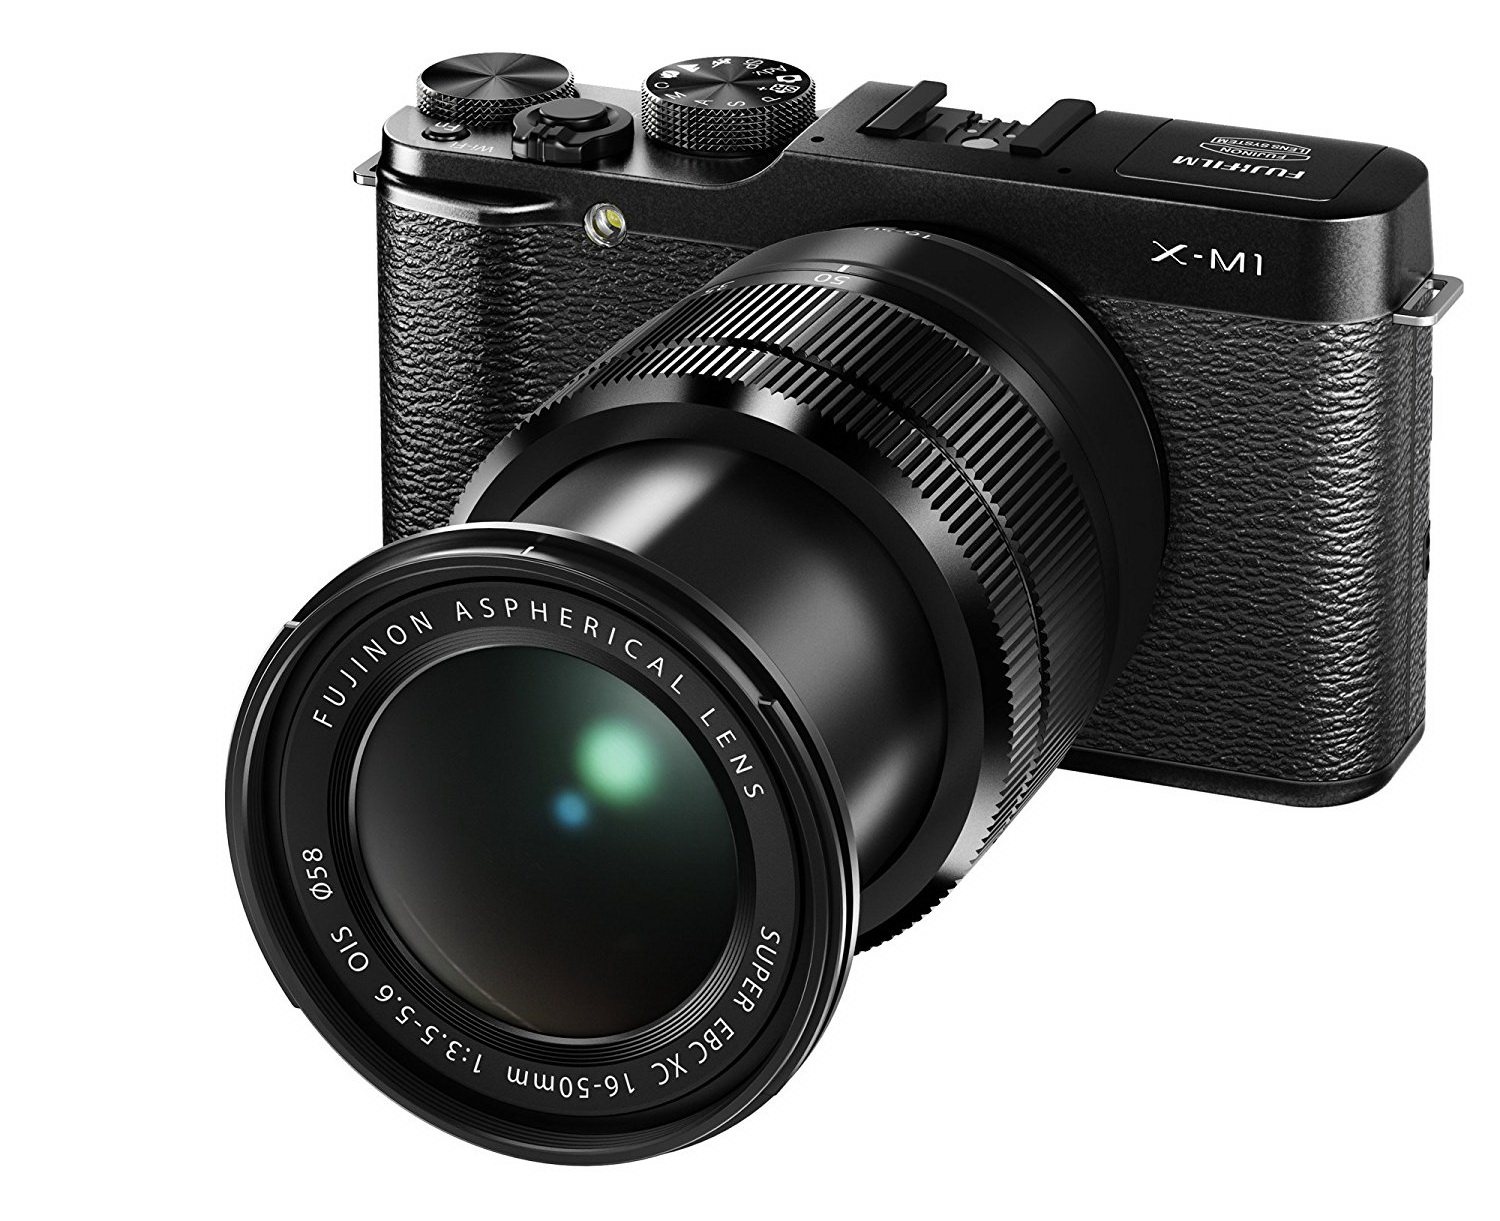 Fujifilm X-M1 Review: An Entry-Level Camera Worth the Investment